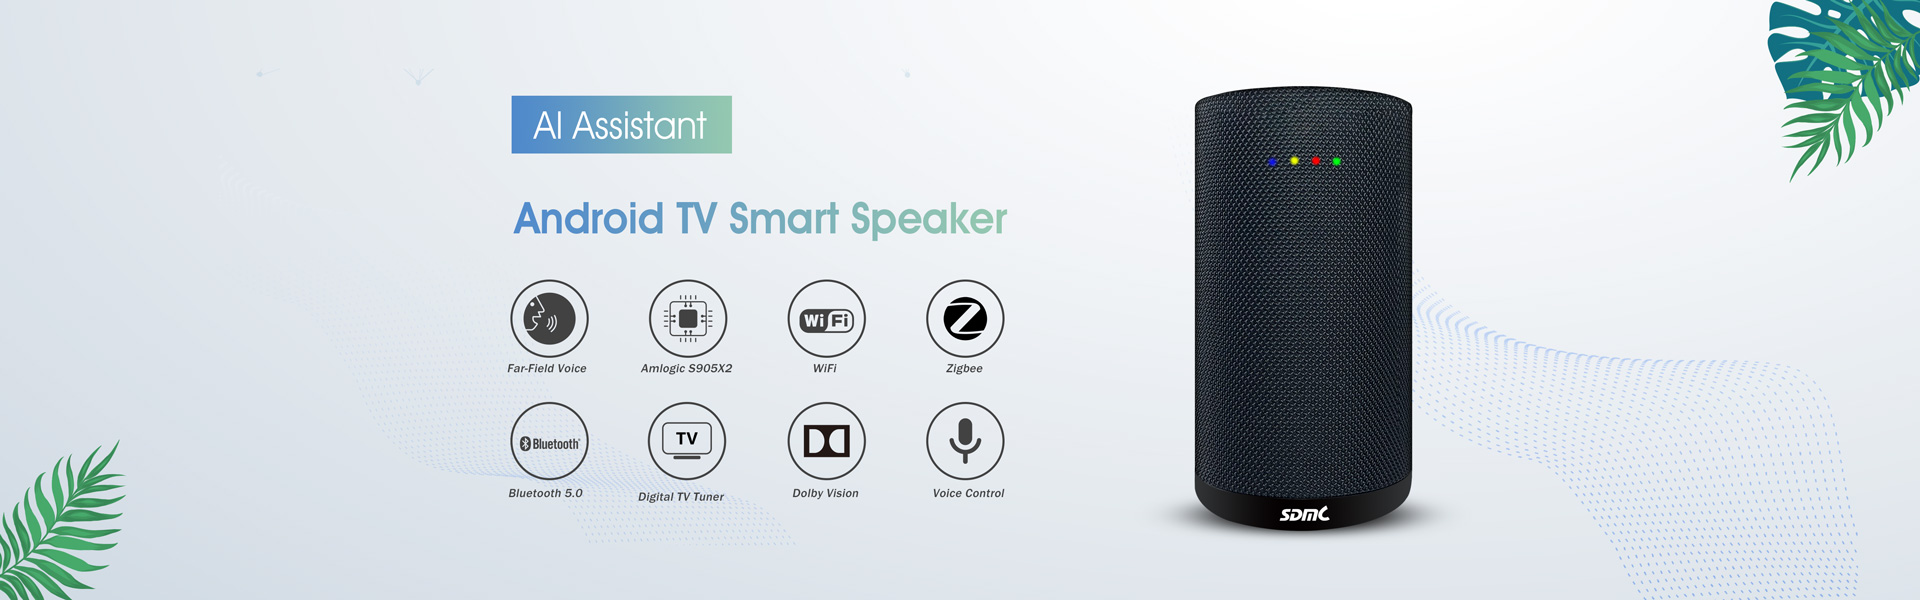 android tv box,wifi mesh router,smart speaker,Shenzhen SDMC Technology Co.,Ltd